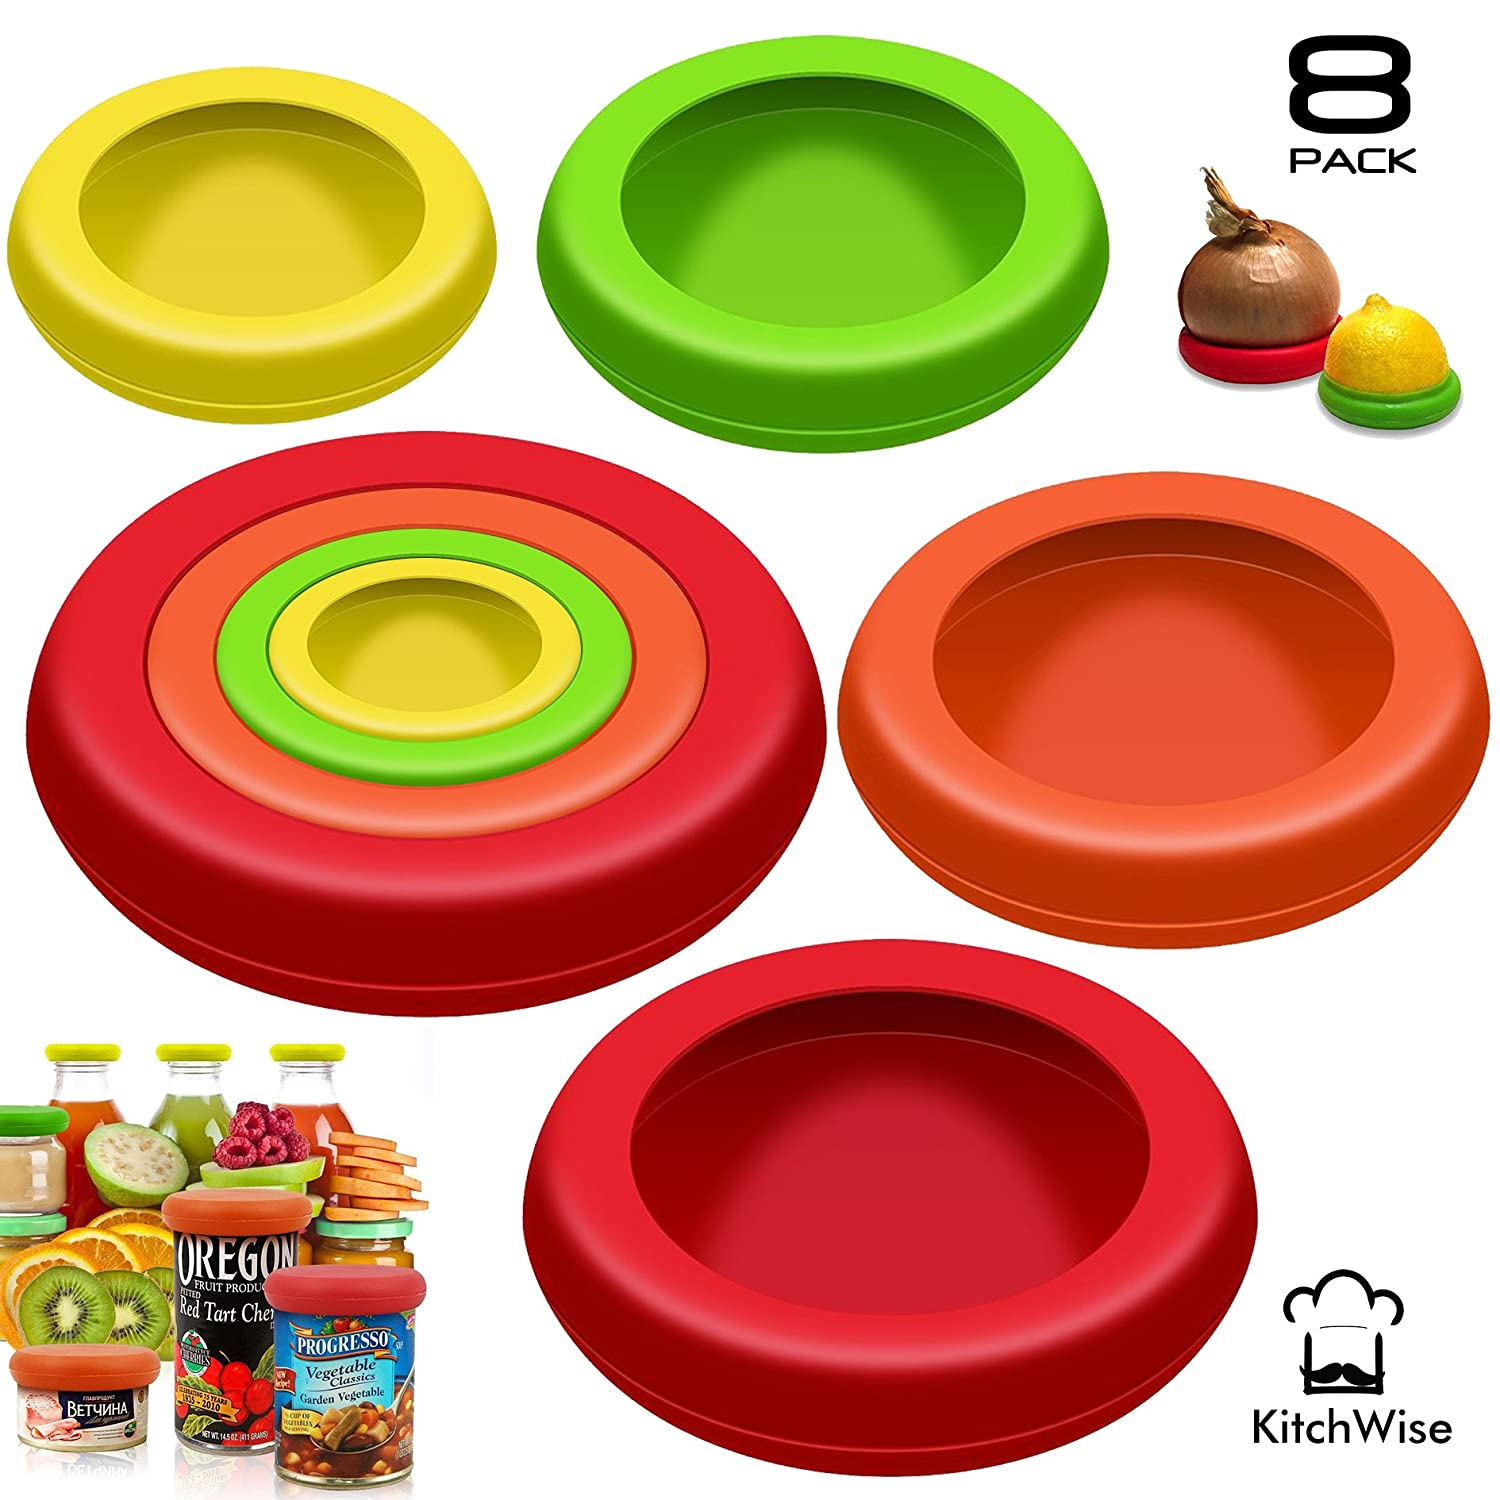 Kitchwise Reusable Fruit & Vegetable Saver